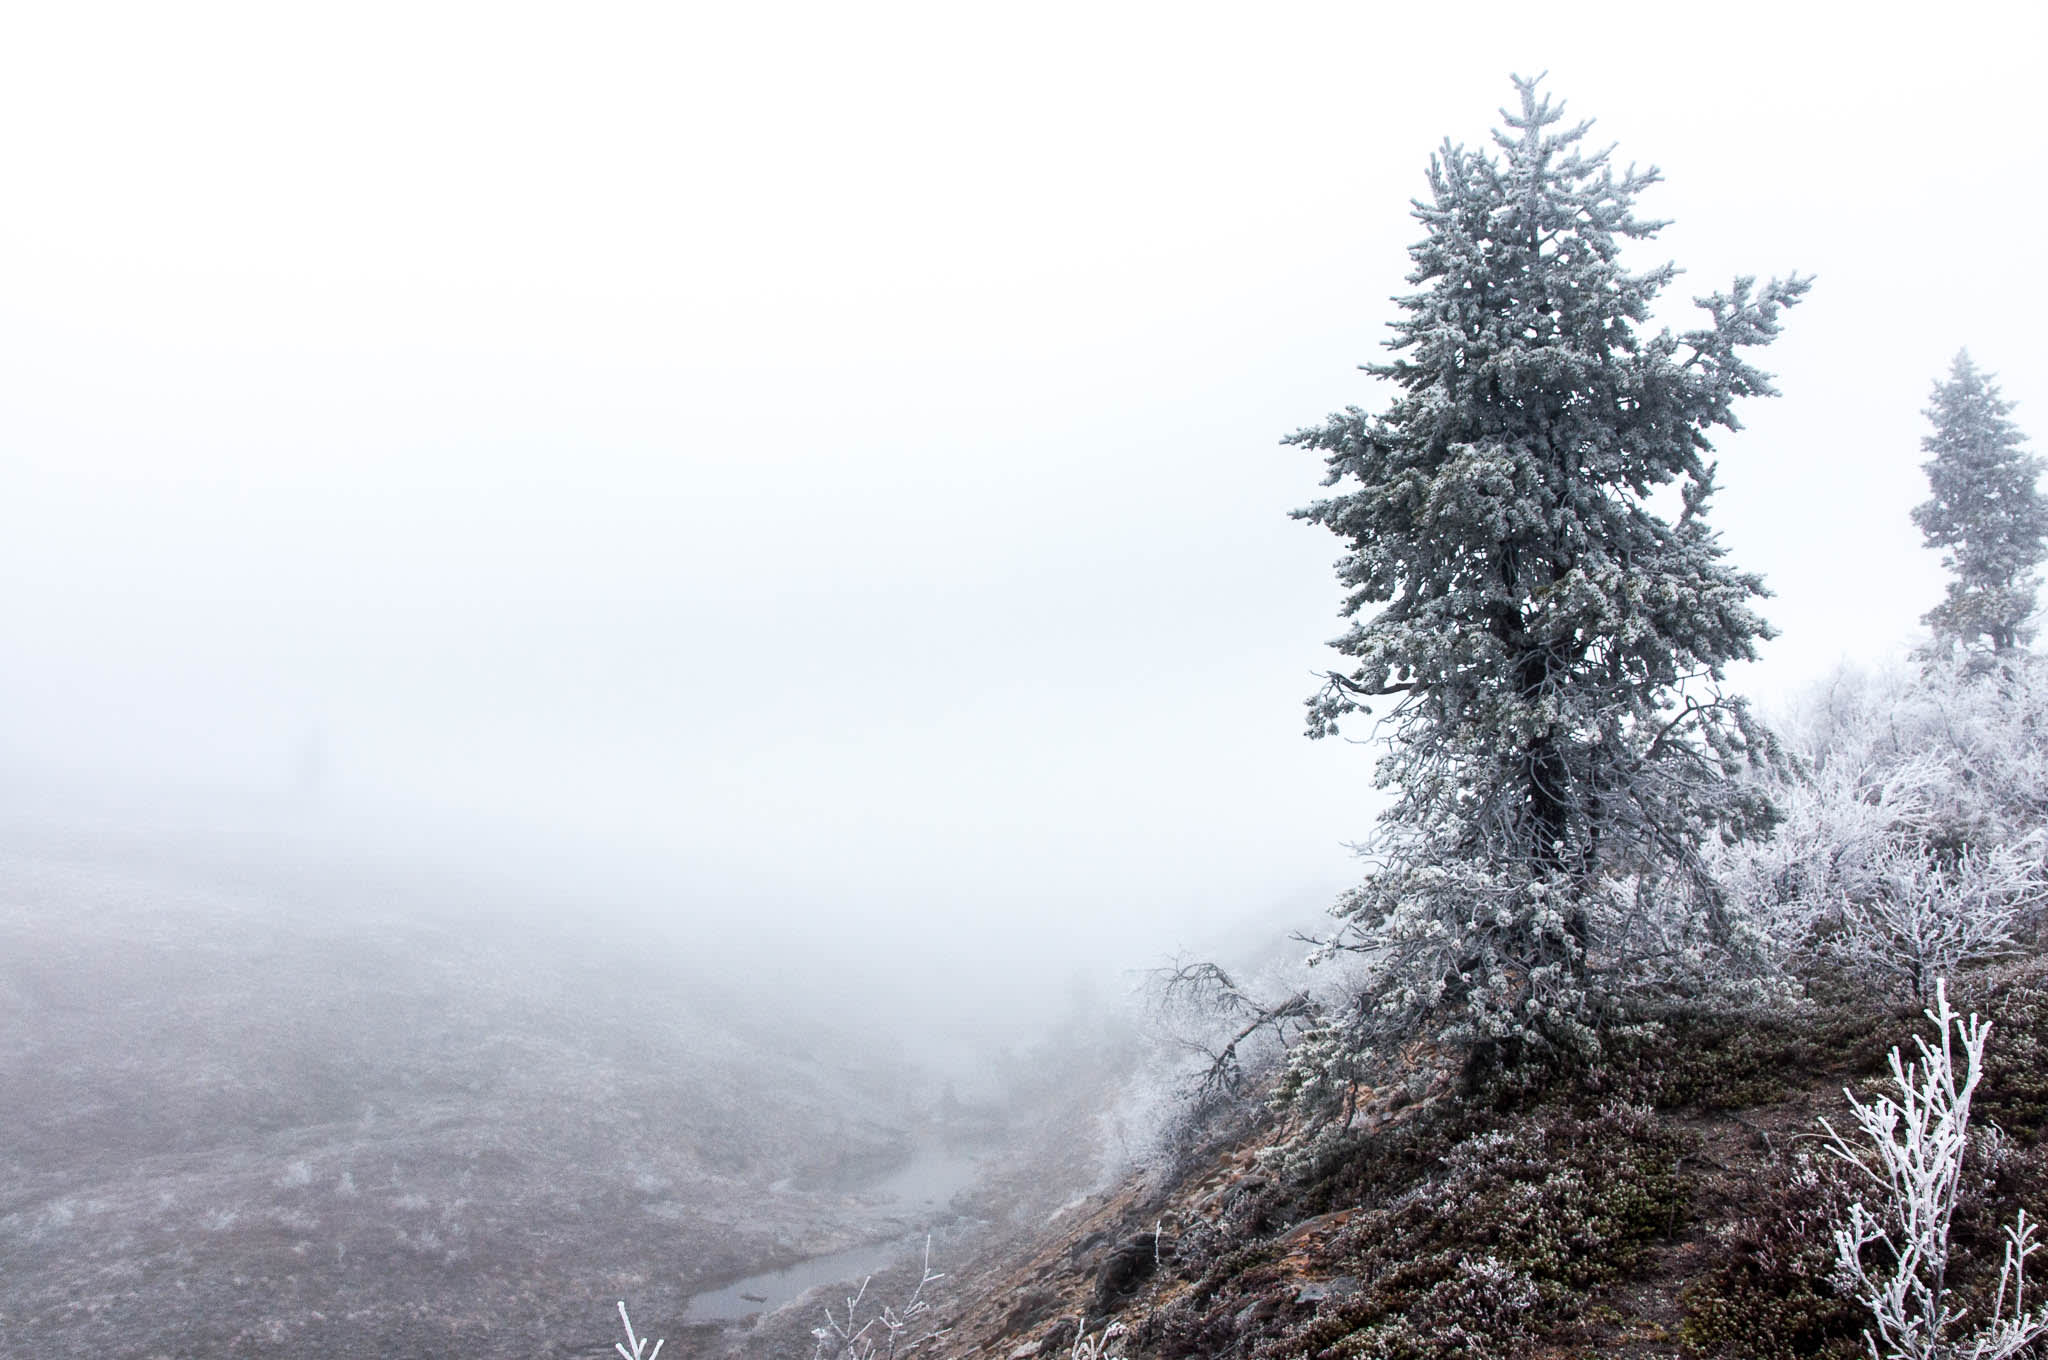 Nordic nature foggy view from mountain top